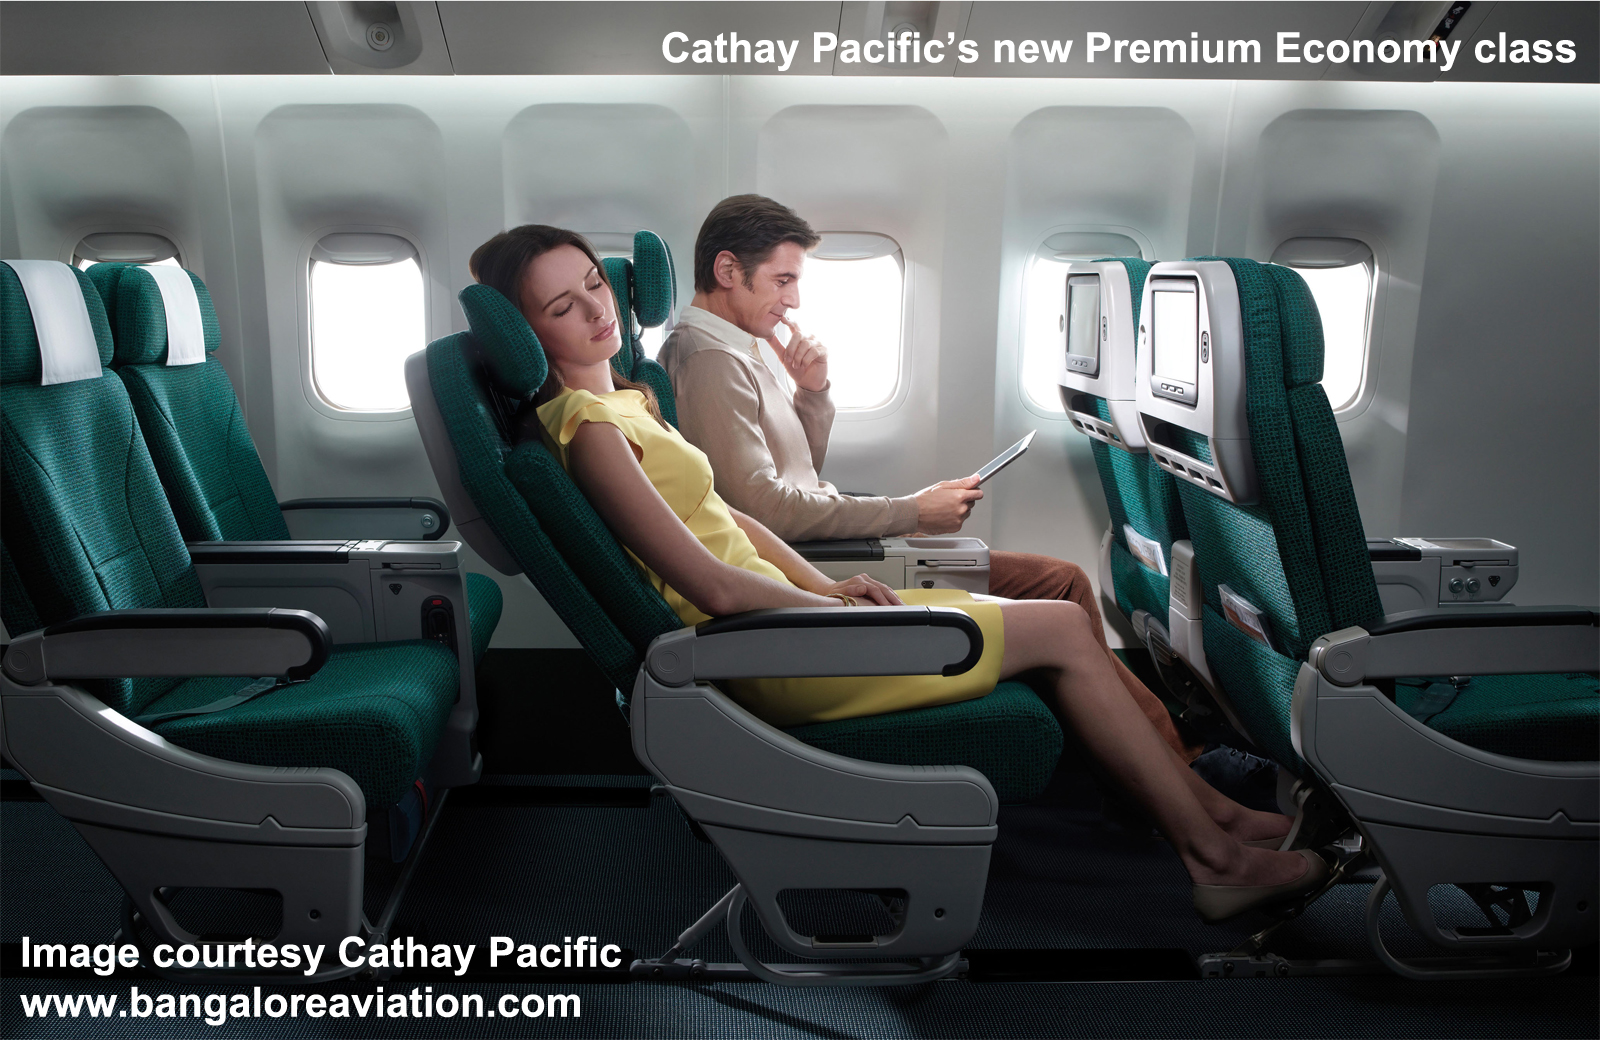 United Airlines A320 Jet Interior Wiring Diagrams Sony Cdx Gt55uiw Diagram Along With Number Bonds 110 Worksheet Cathay Pacific Premium Economy A Great Way To Go Airbus A319 A380